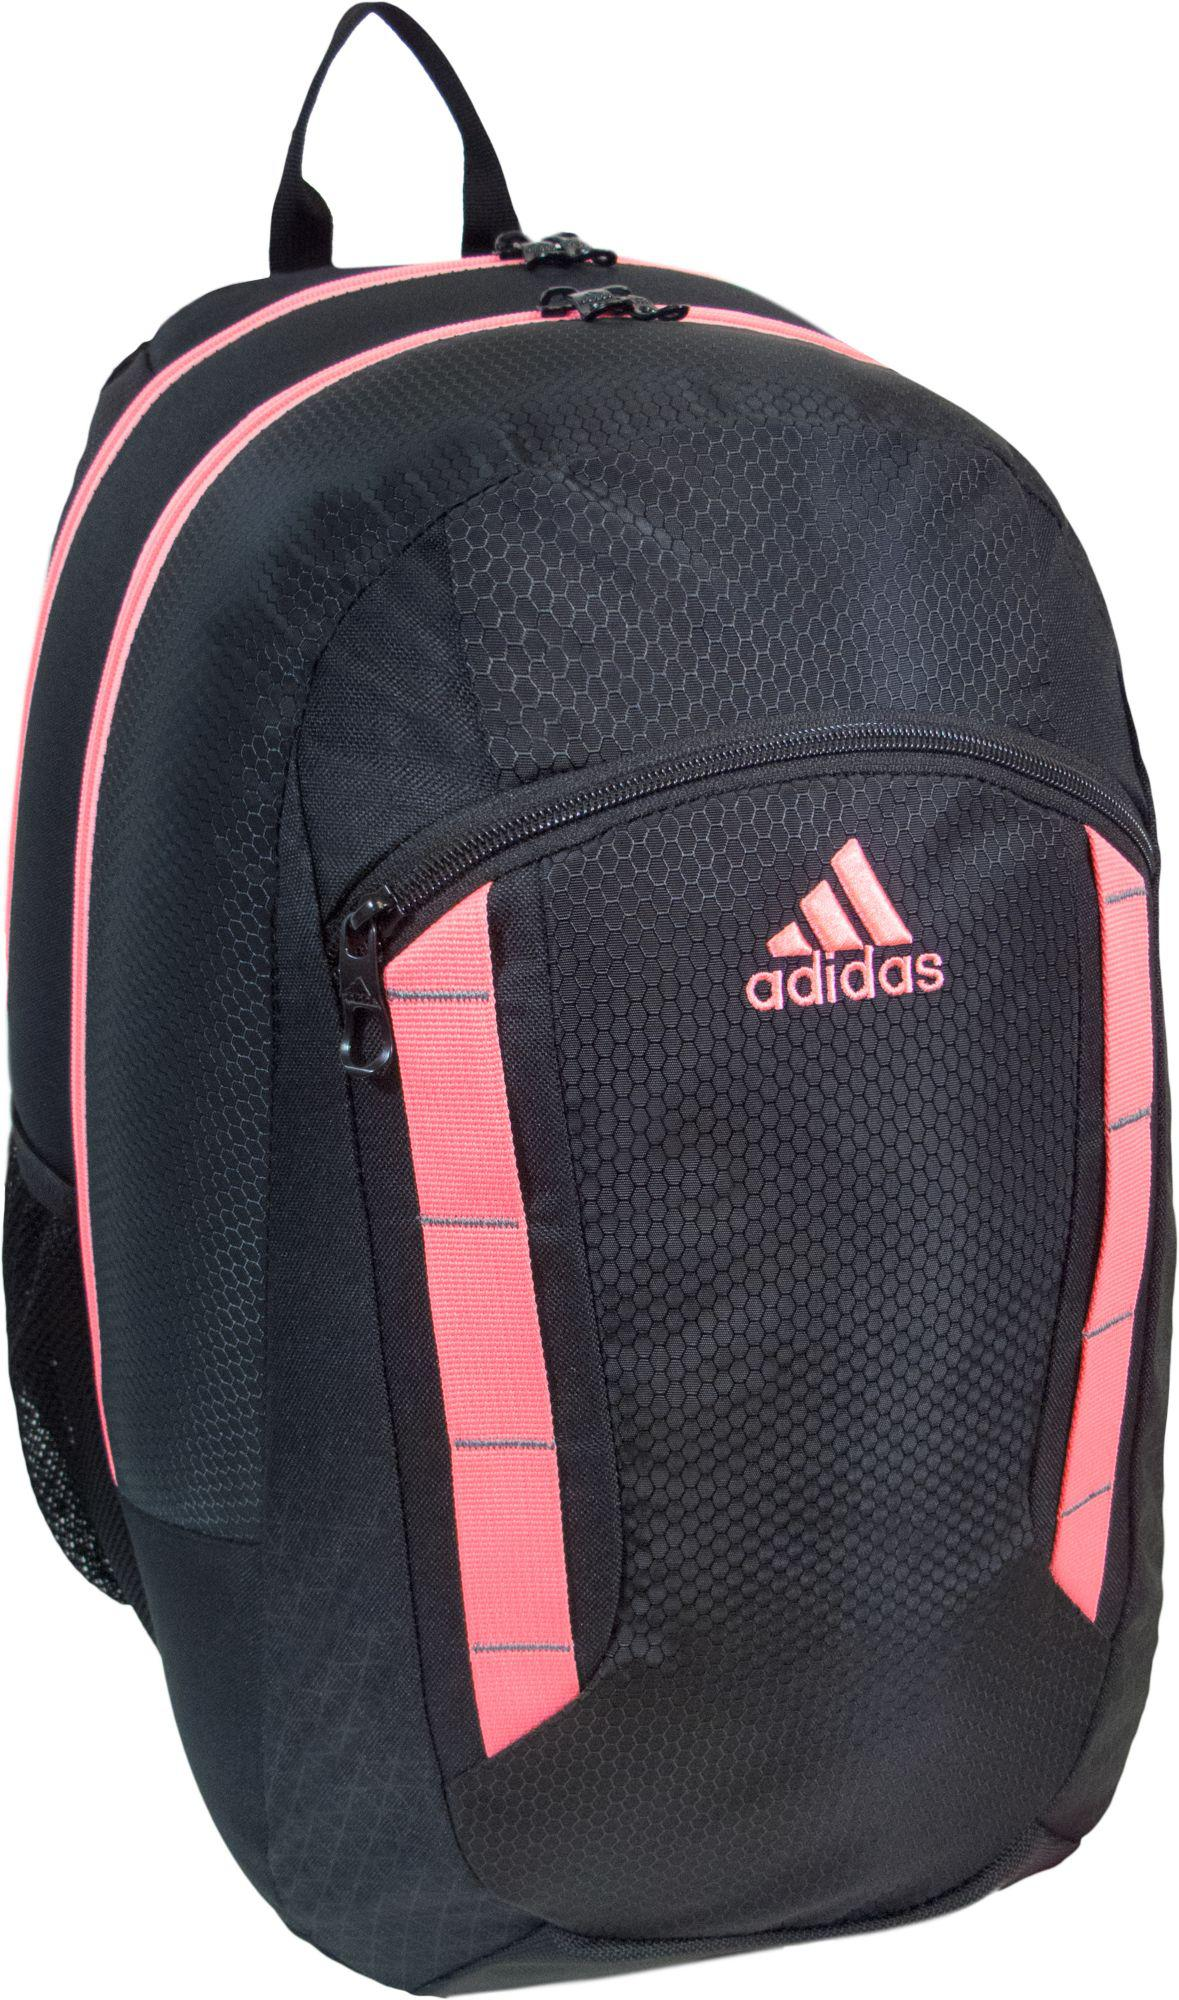 Adidas - Multicolor Excel Iii Backpack - Lyst fef7f07d5e566